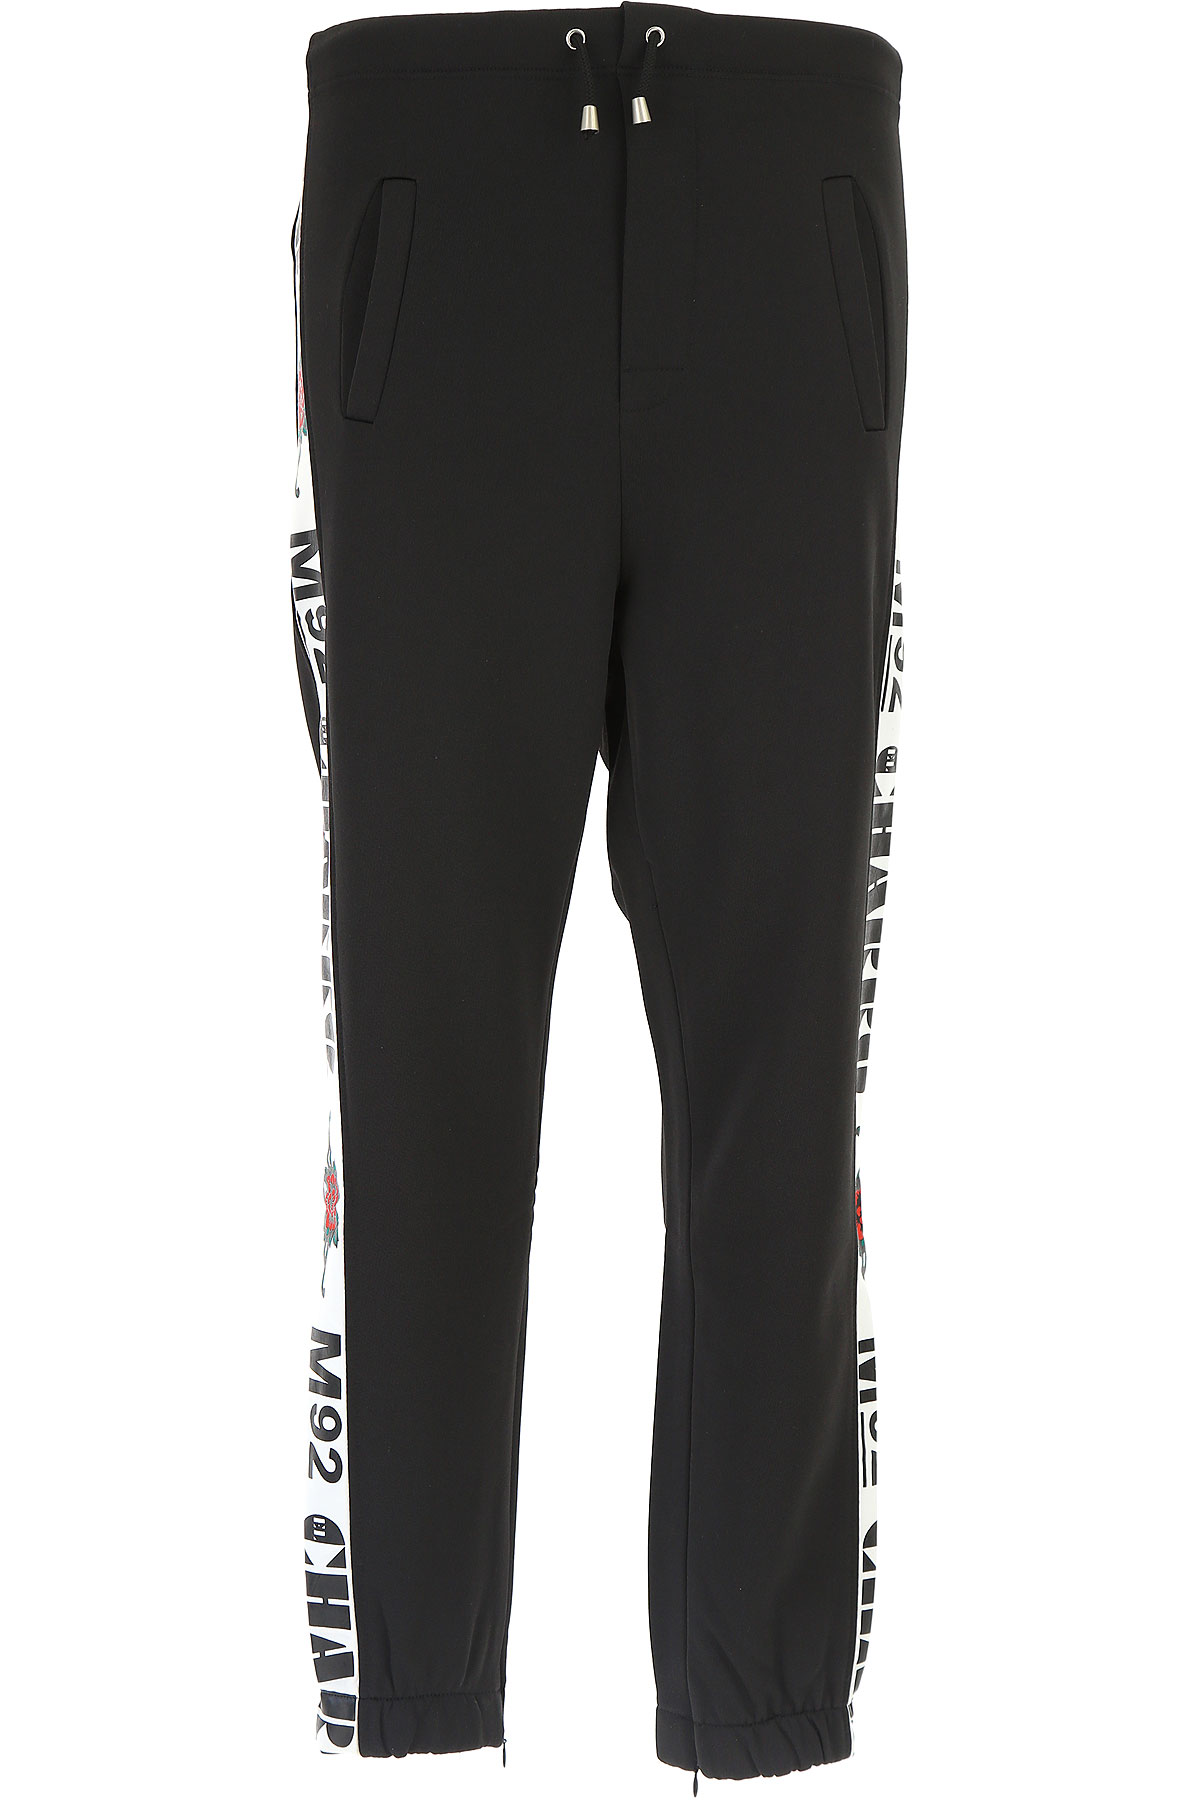 Image of M1992 Sweatpants, Black, polyester, 2017, L M S